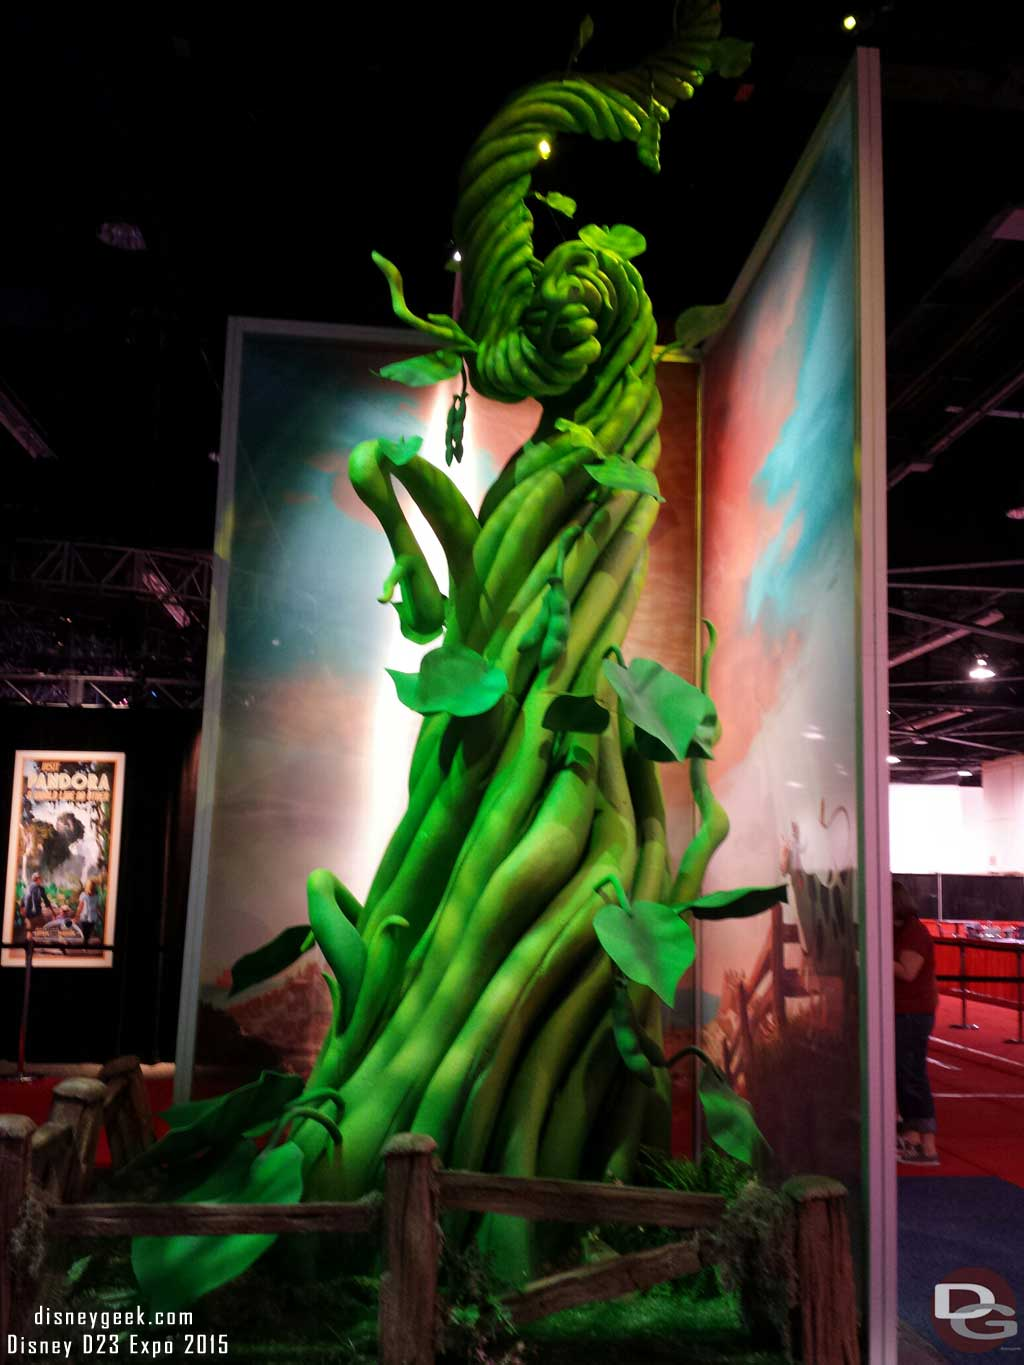 A Beanstalk for the upcoming Disney Animated film Gigantic  #D23Expo